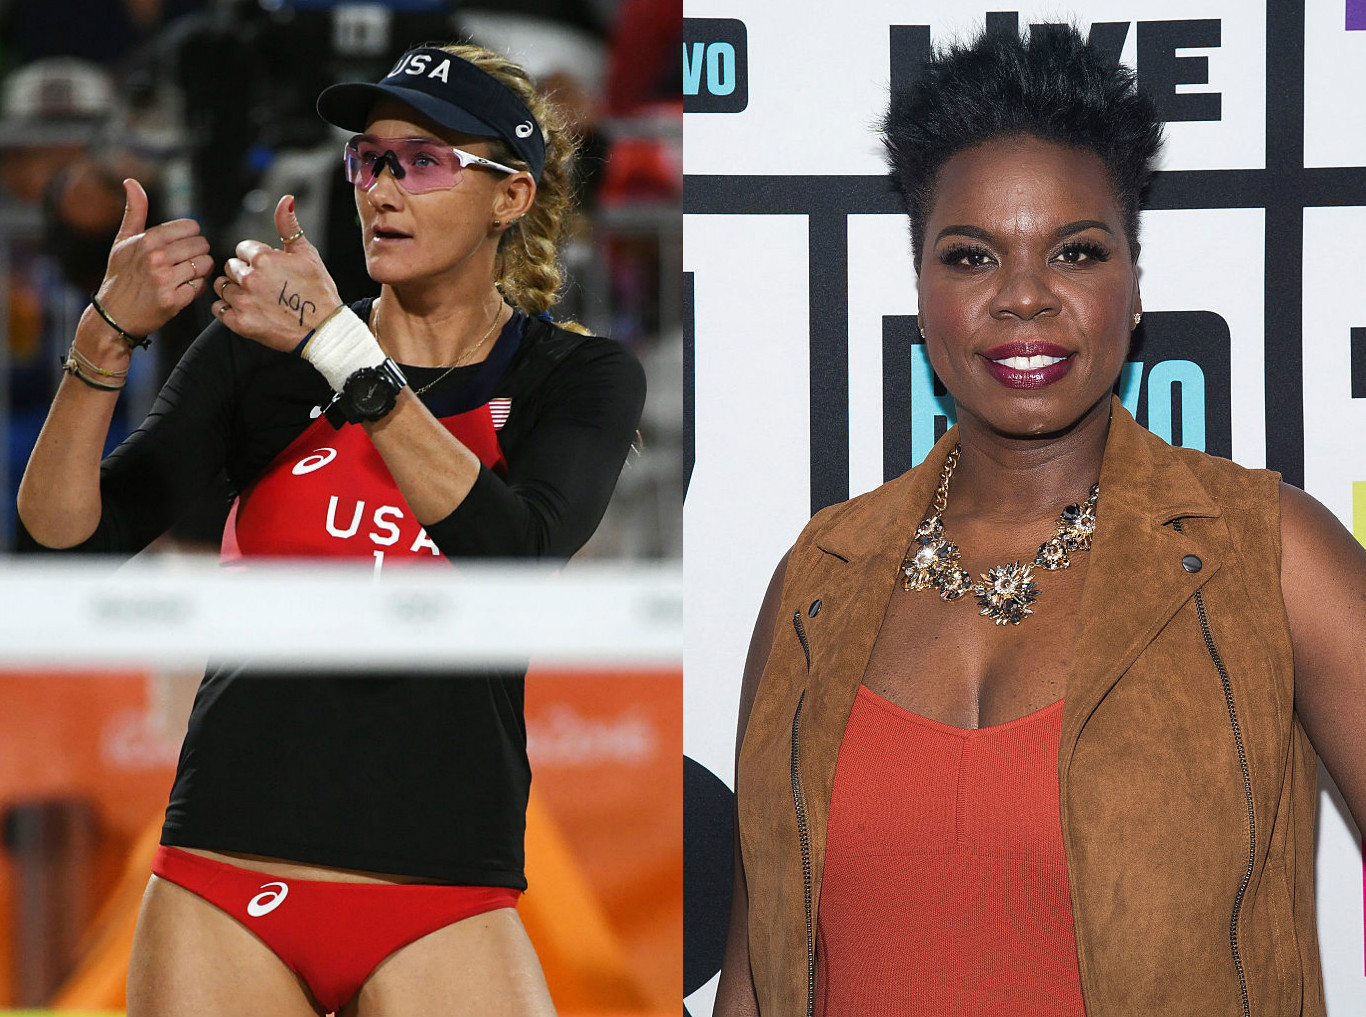 Leslie Jones and this mega Olympian fangirled over each other on Twitter and now they're BFFs